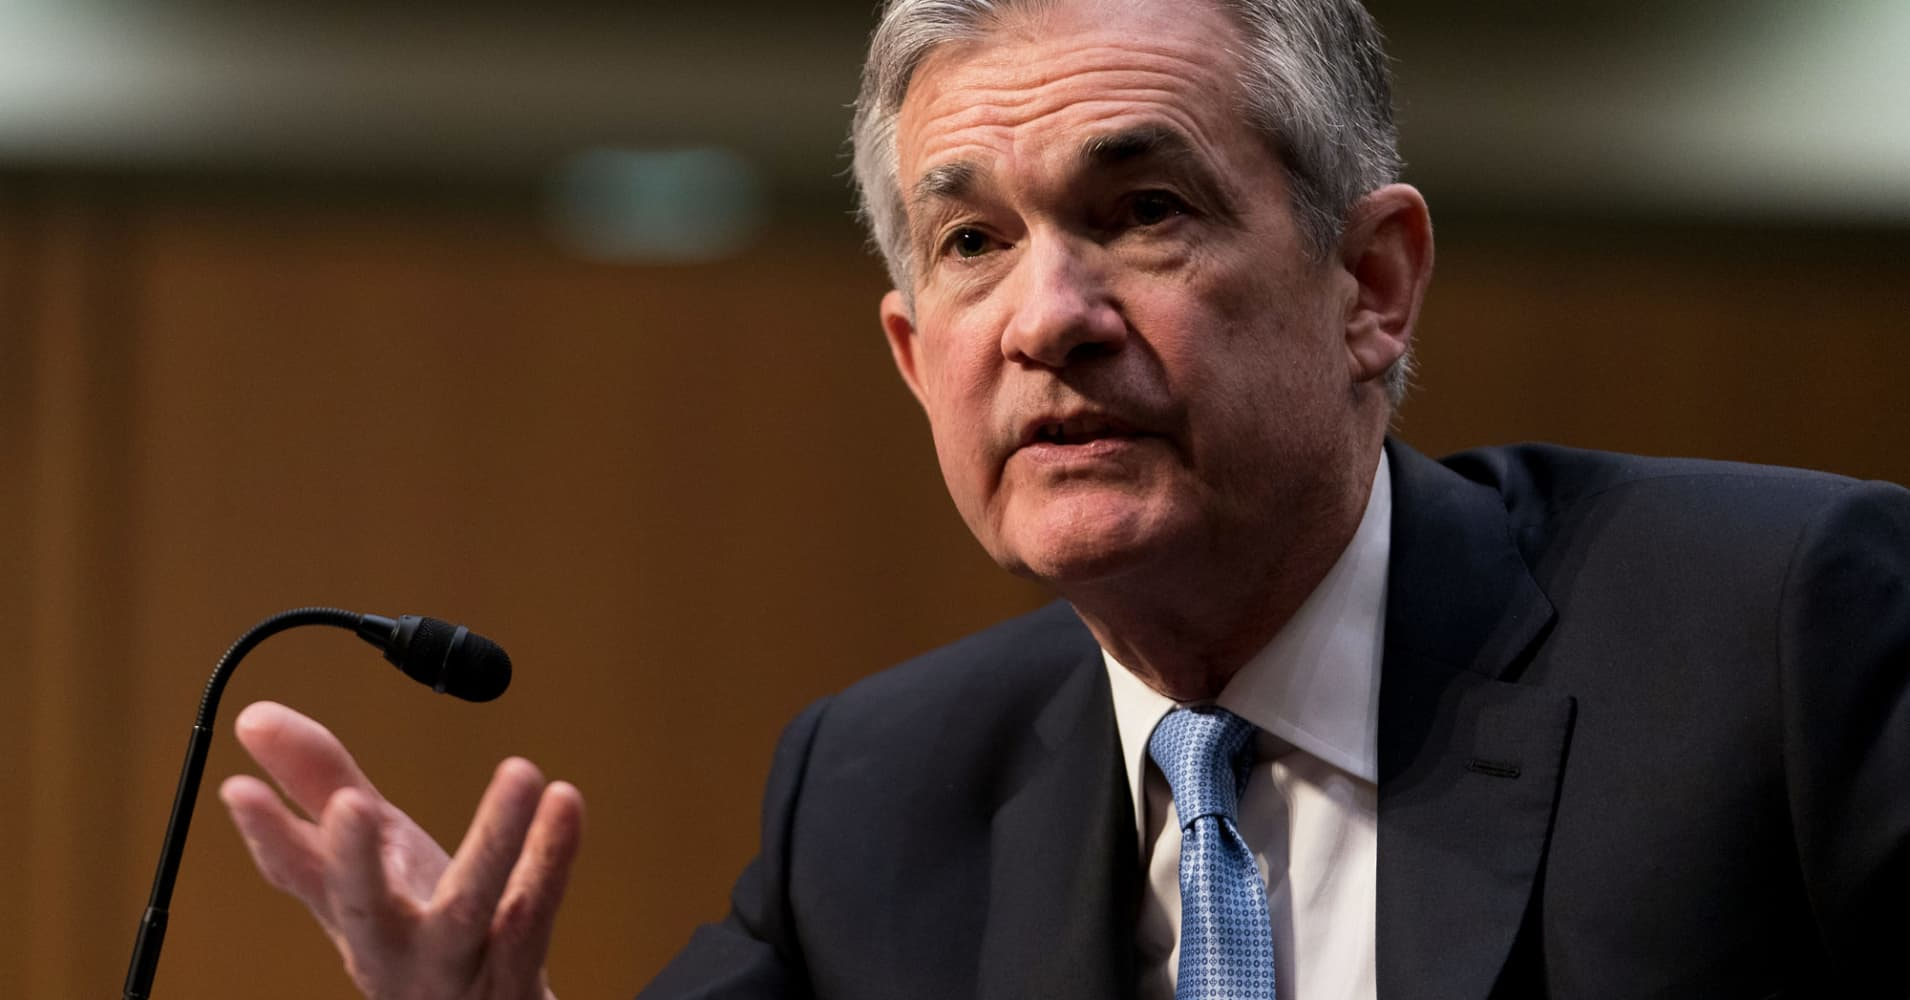 Fed hikes rates, points to two more increases by year's end